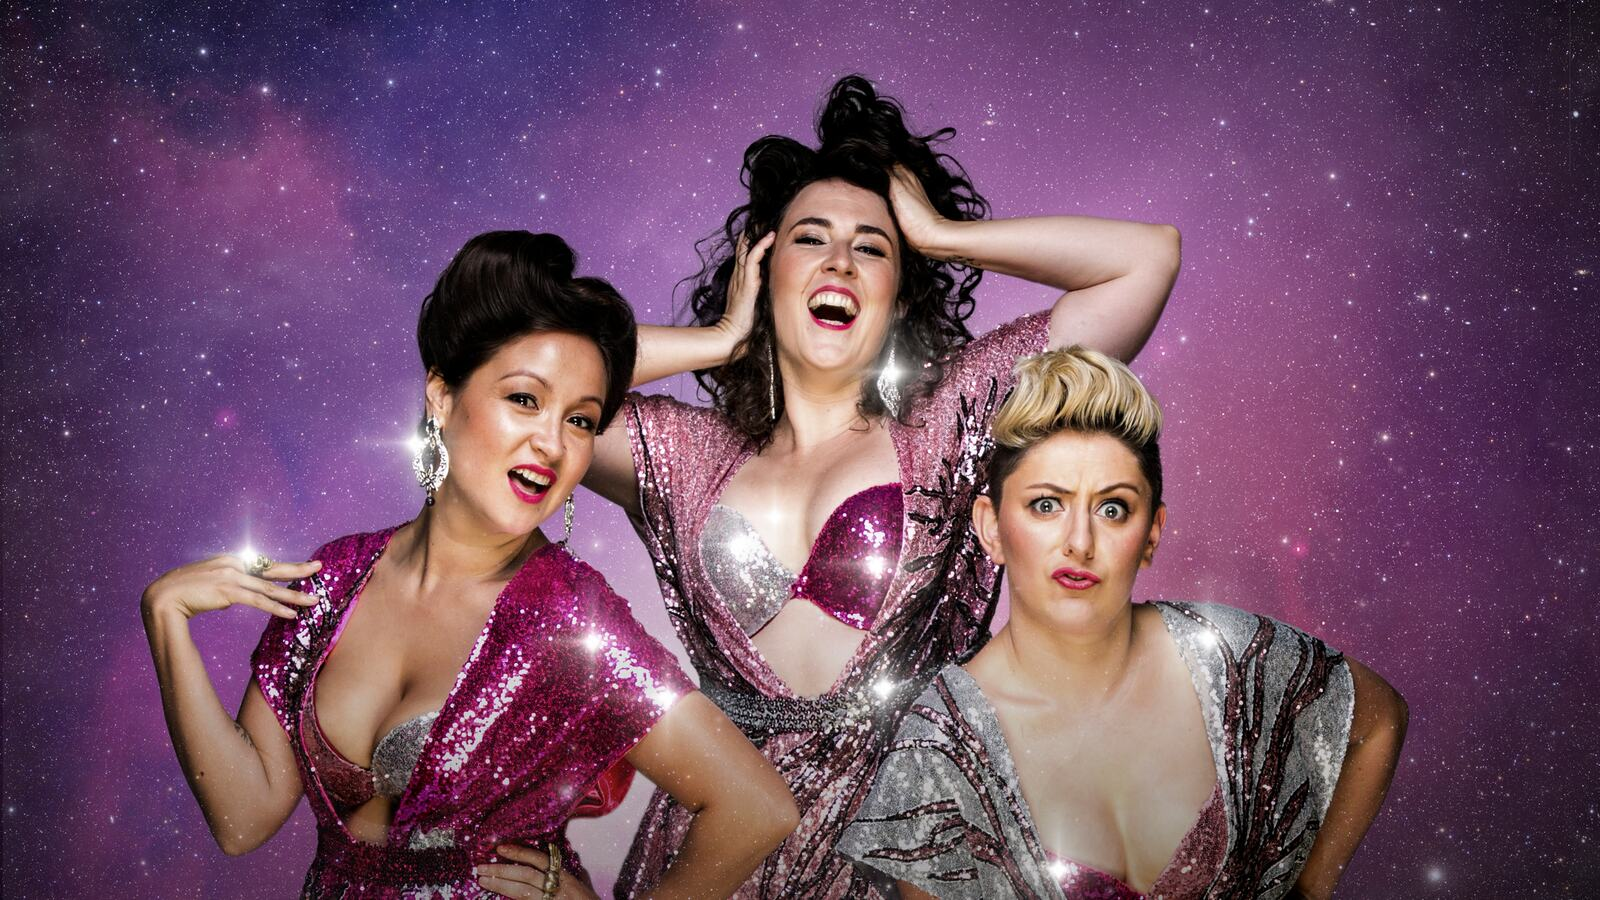 Glittery Clittery, Fringe Wives Club cabaret